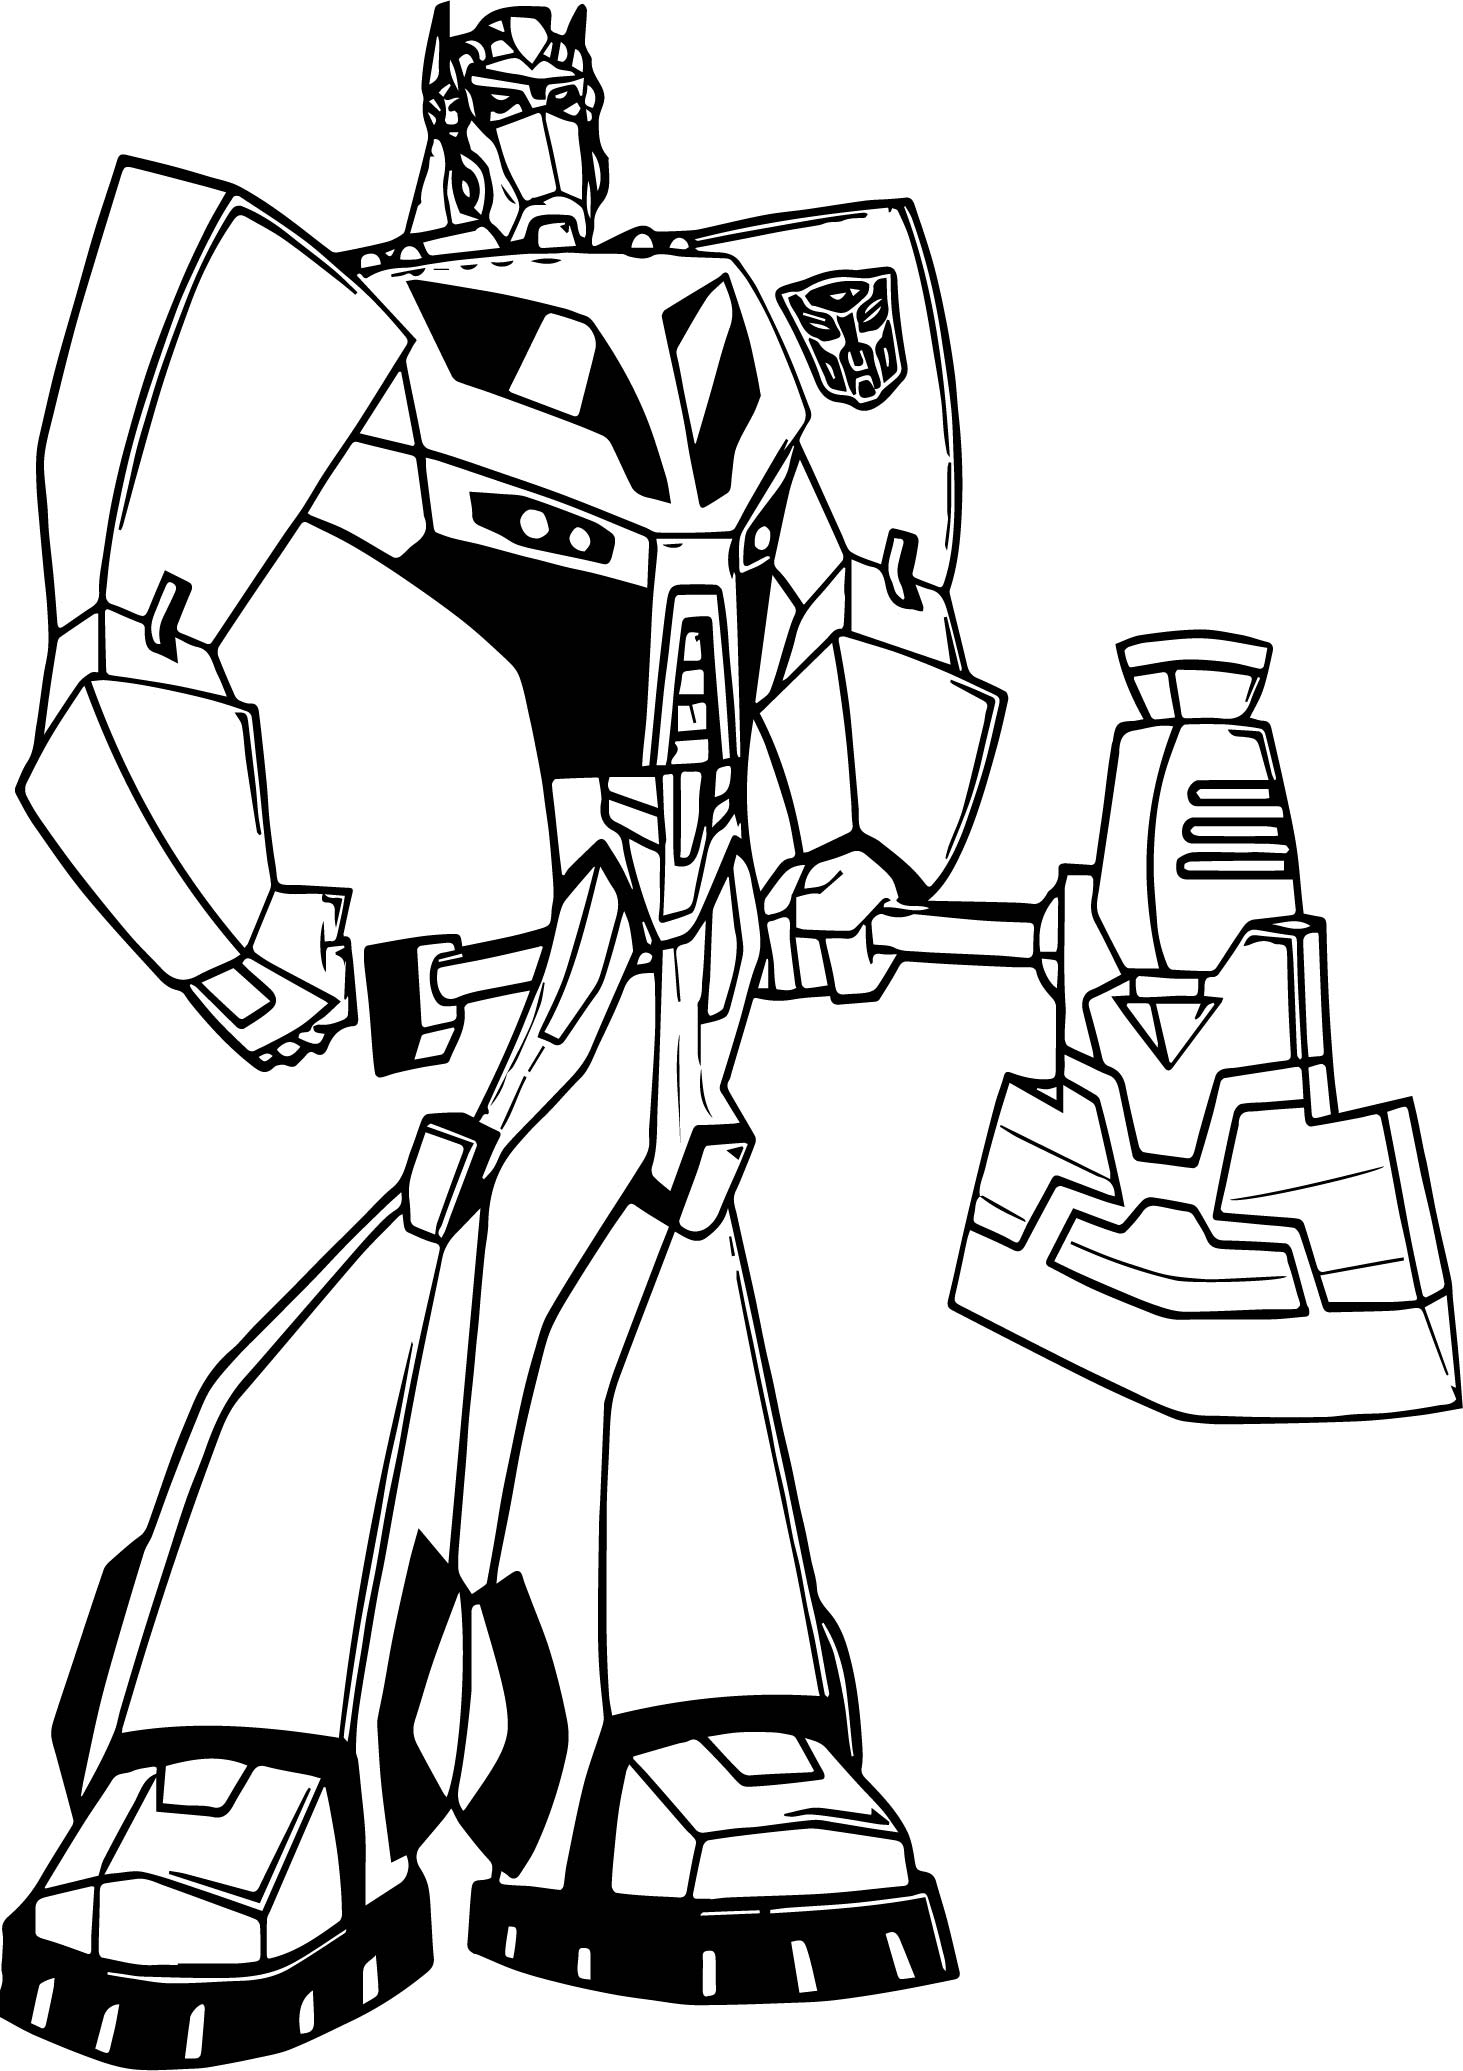 coloring pages transformers print download inviting kids to do the transformers transformers coloring pages 1 1